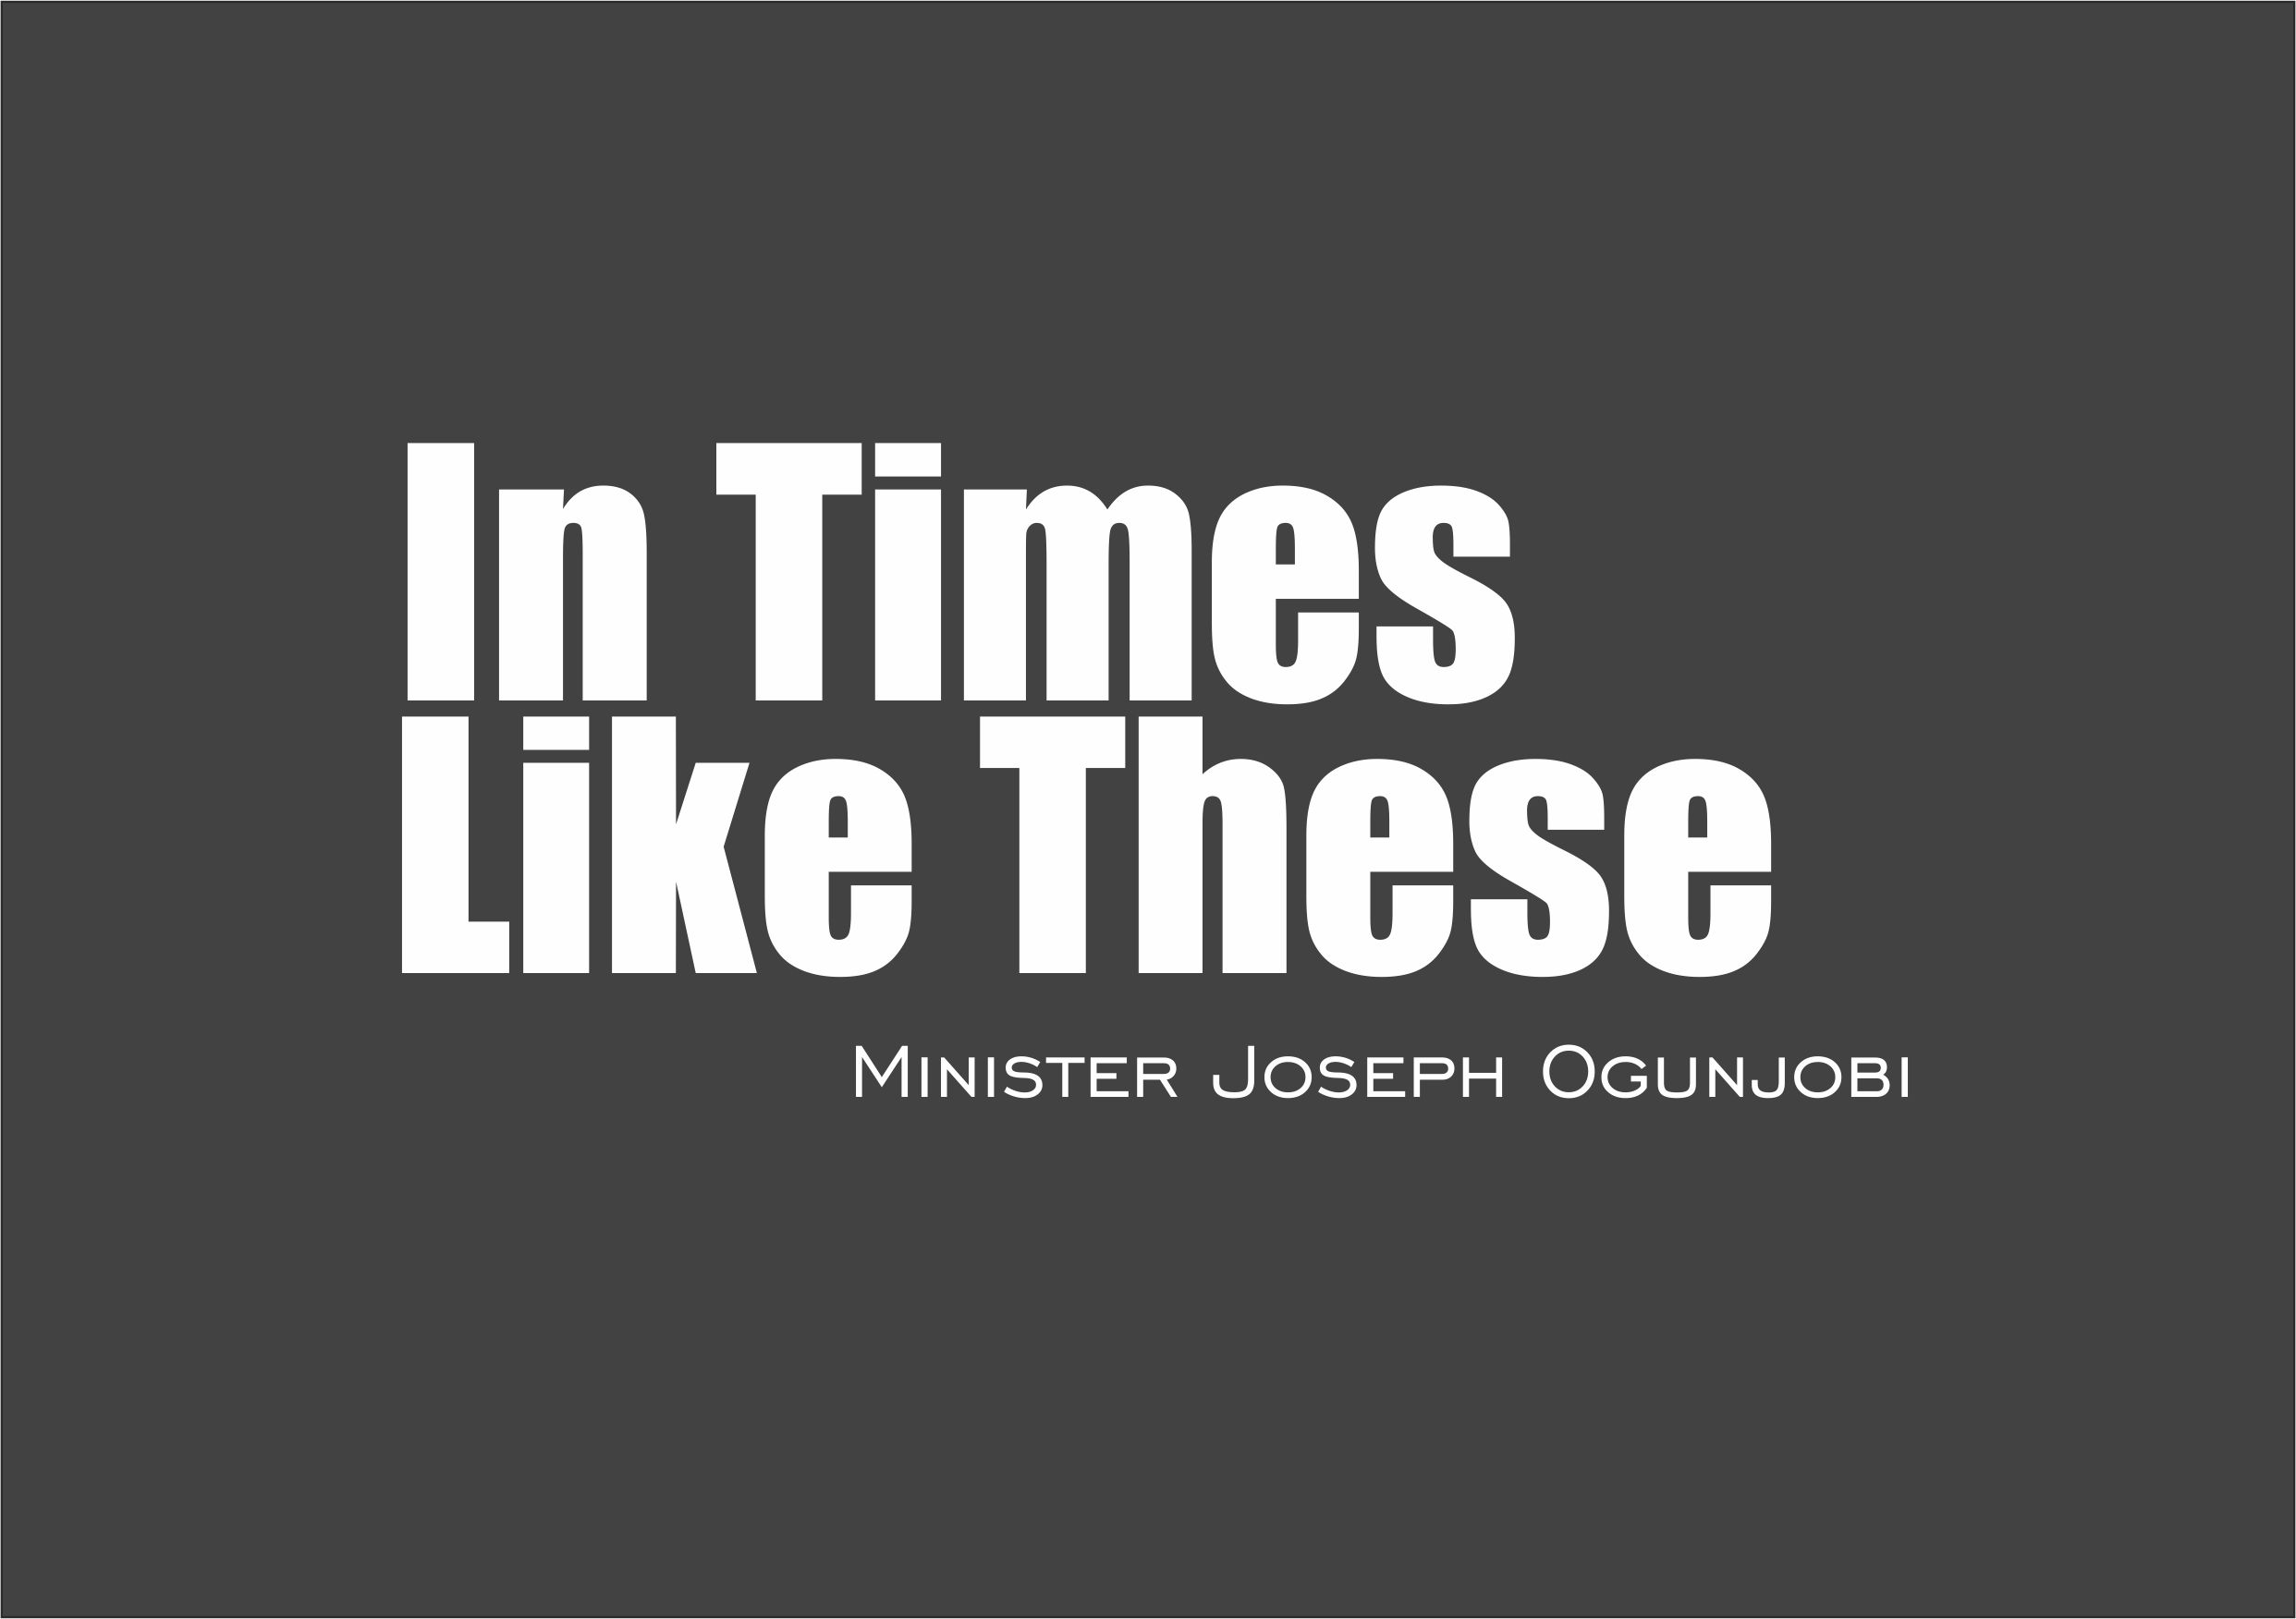 In Times Like These, by Minister Joseph Ogunjobi